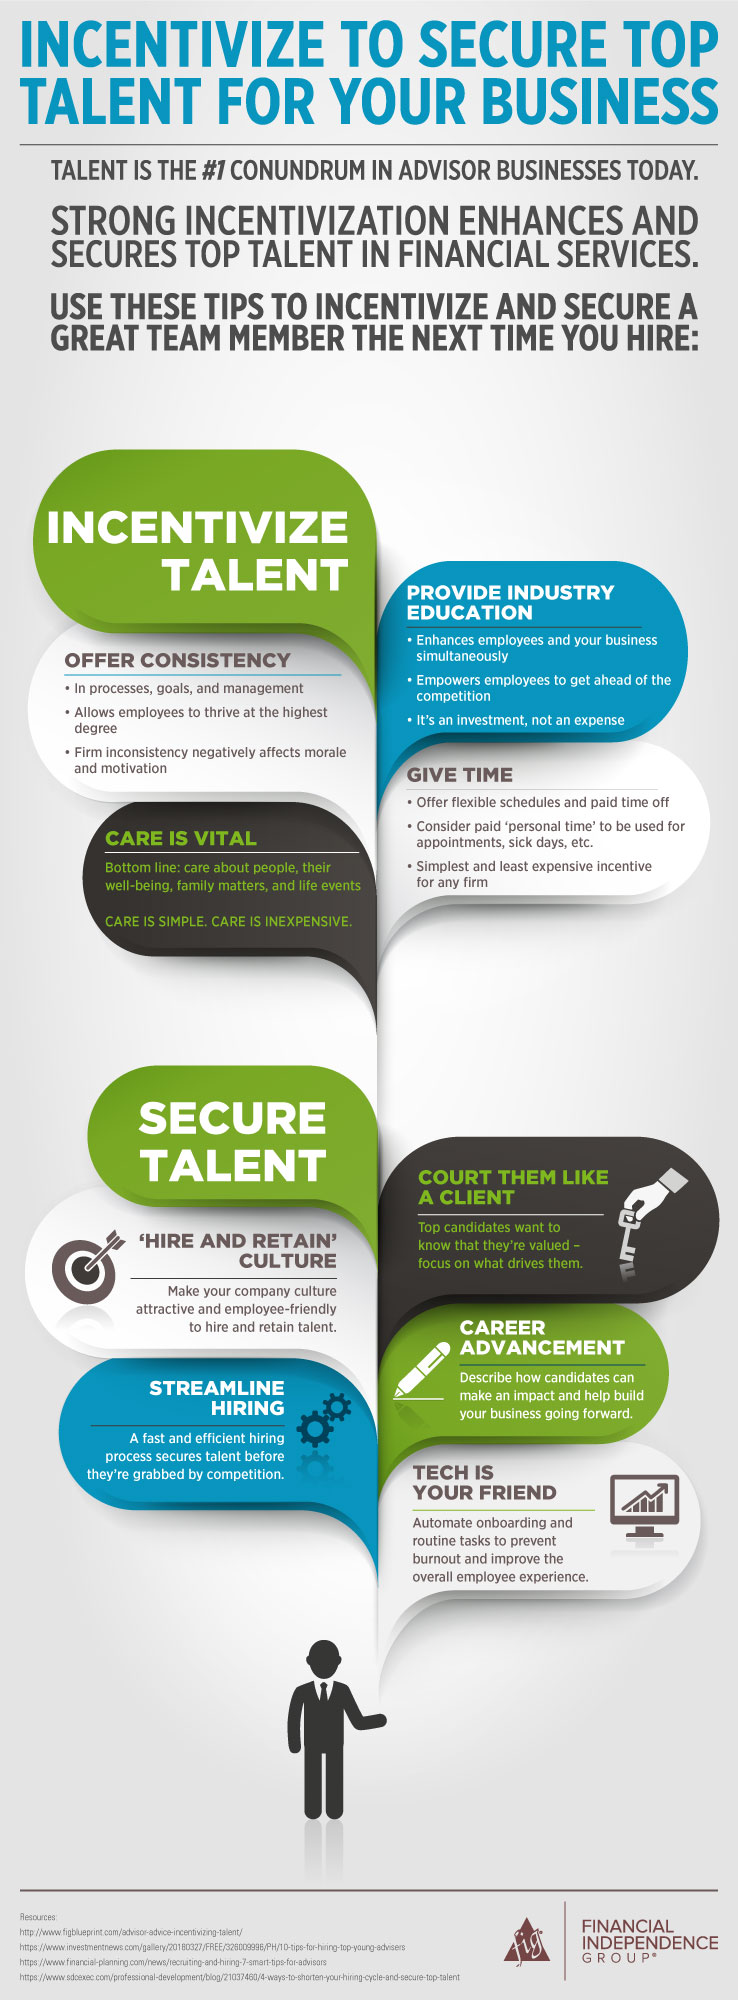 infographic explaining to incentivize to secure top talent for your business